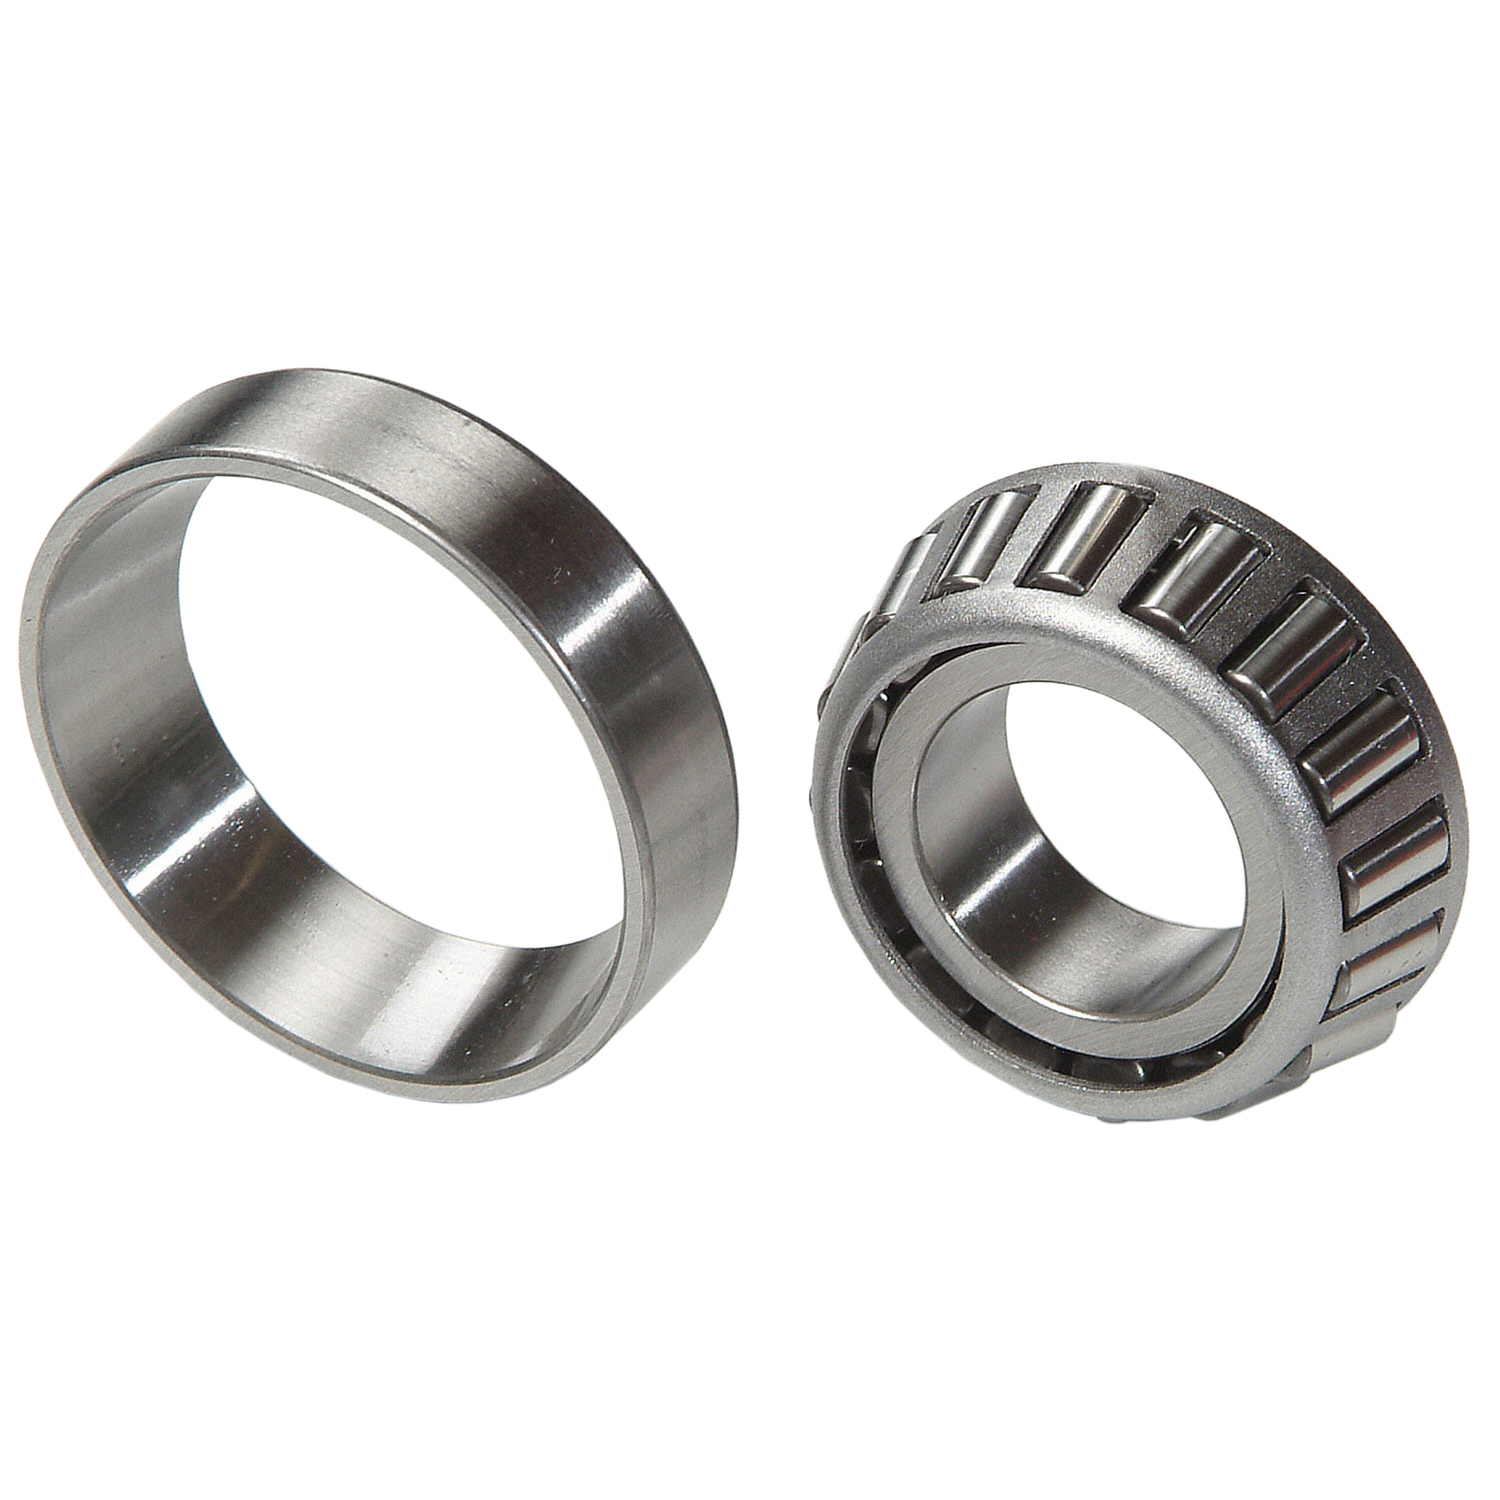 Automatic Transmission Transfer Idler Bearing